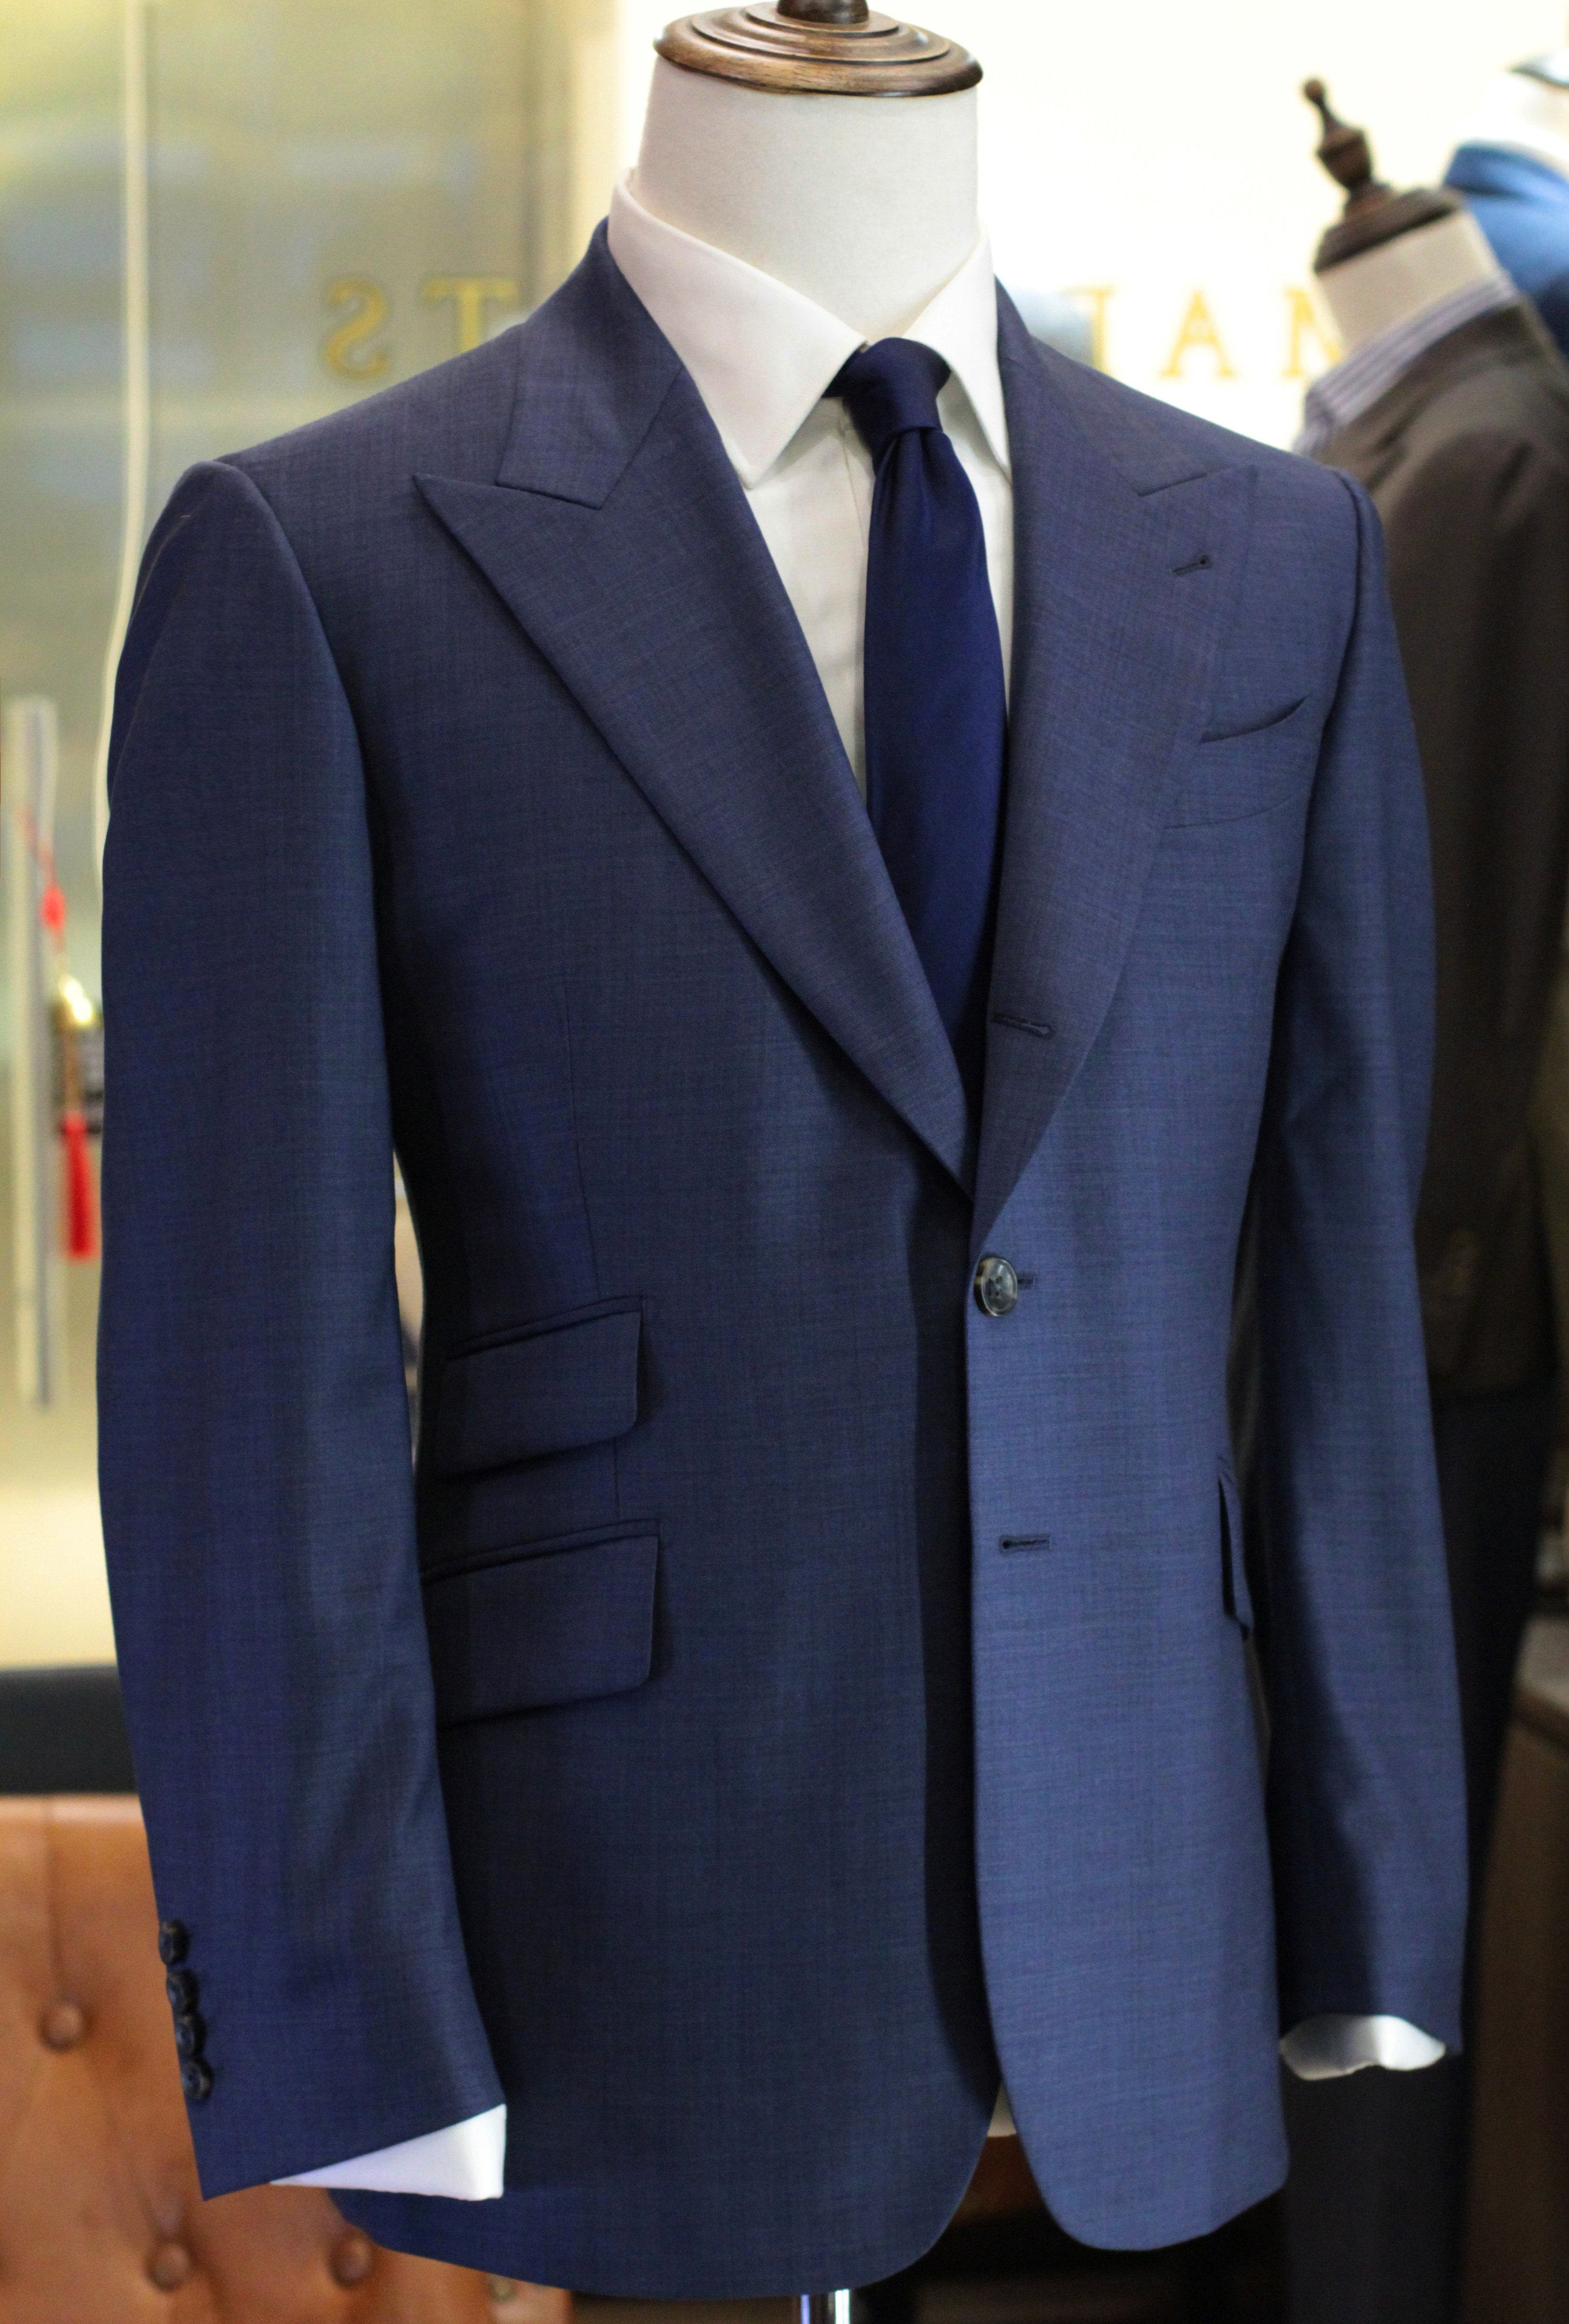 Less Rounded Bottom Suit.